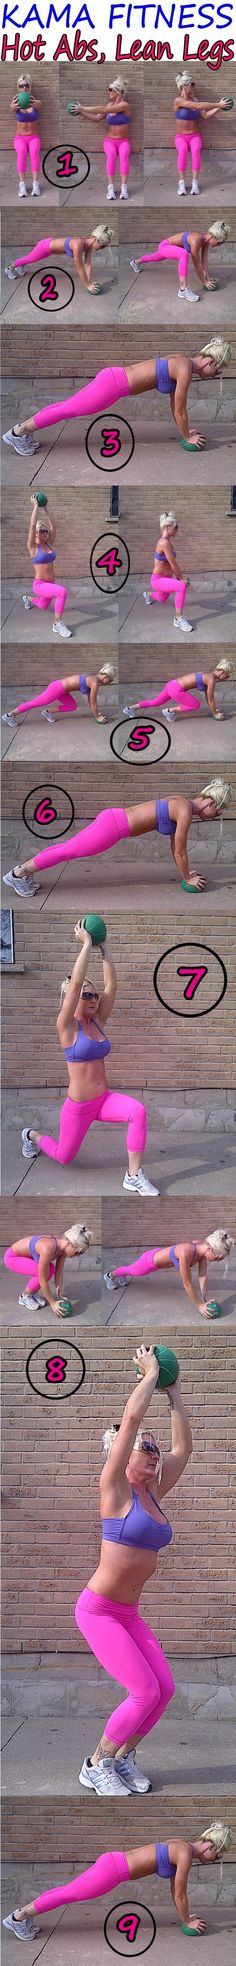 Hot Abs, Lean Legs Workout! | KAMA FITNESS